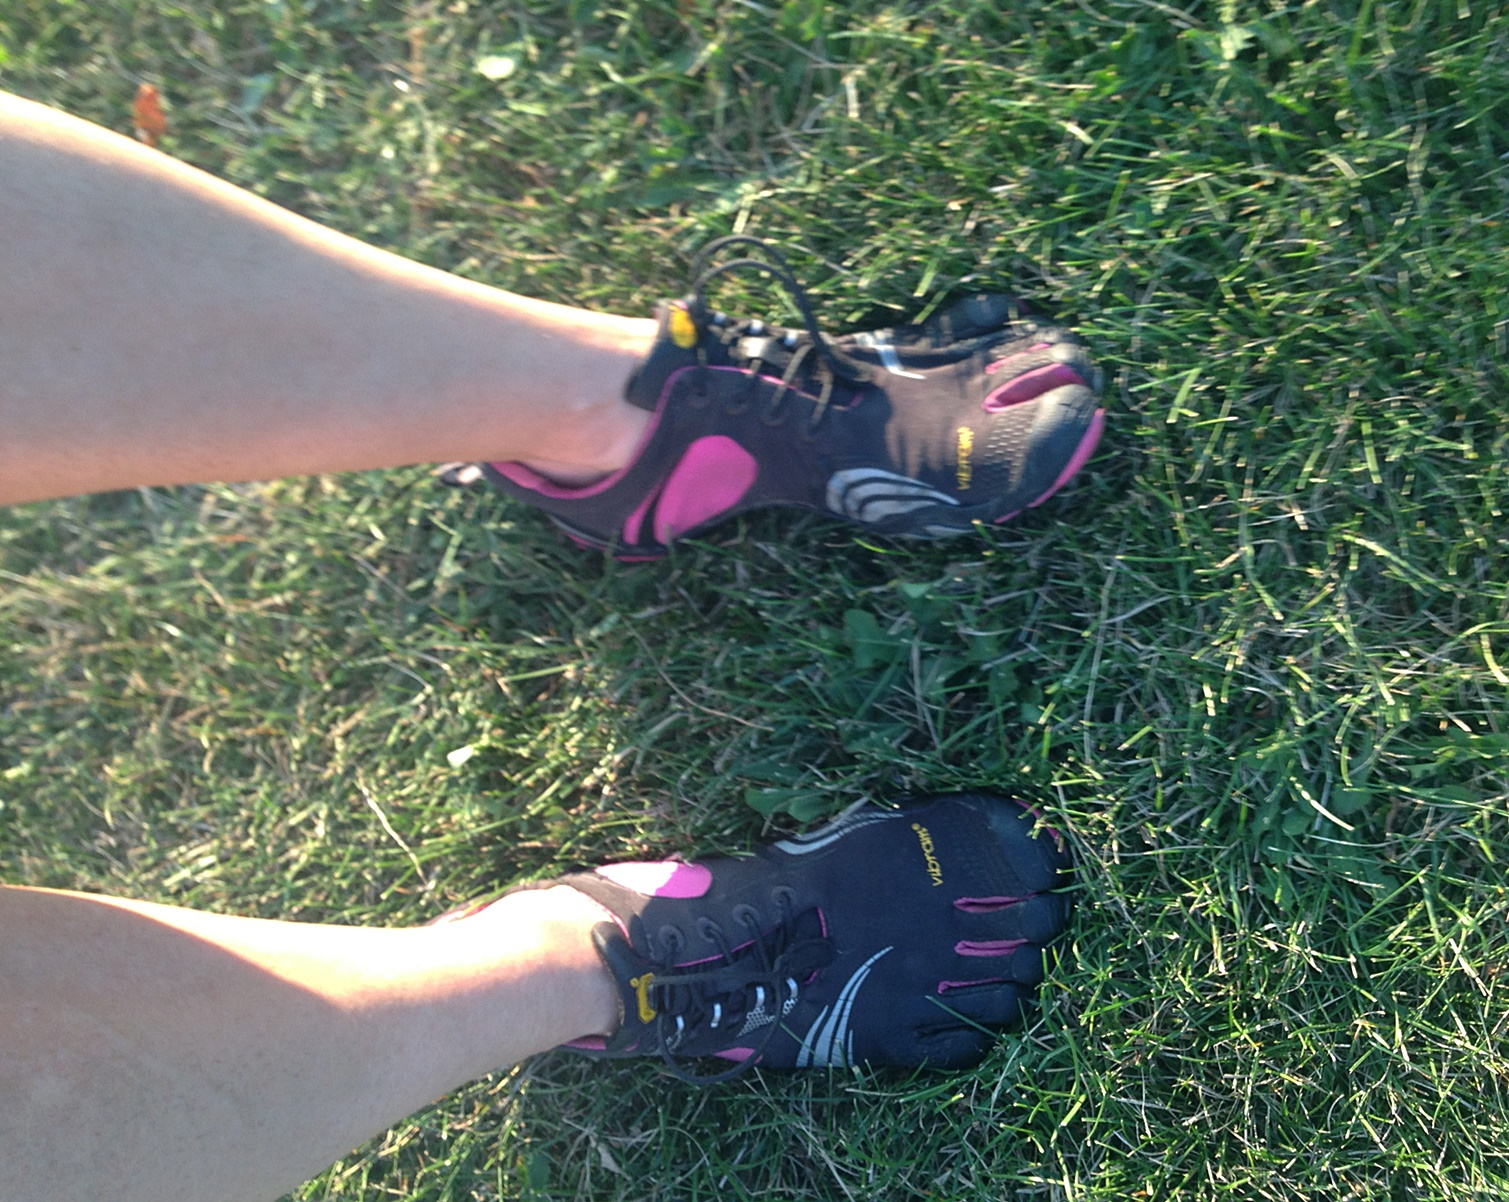 Why Barefoot Before Going Minimalist